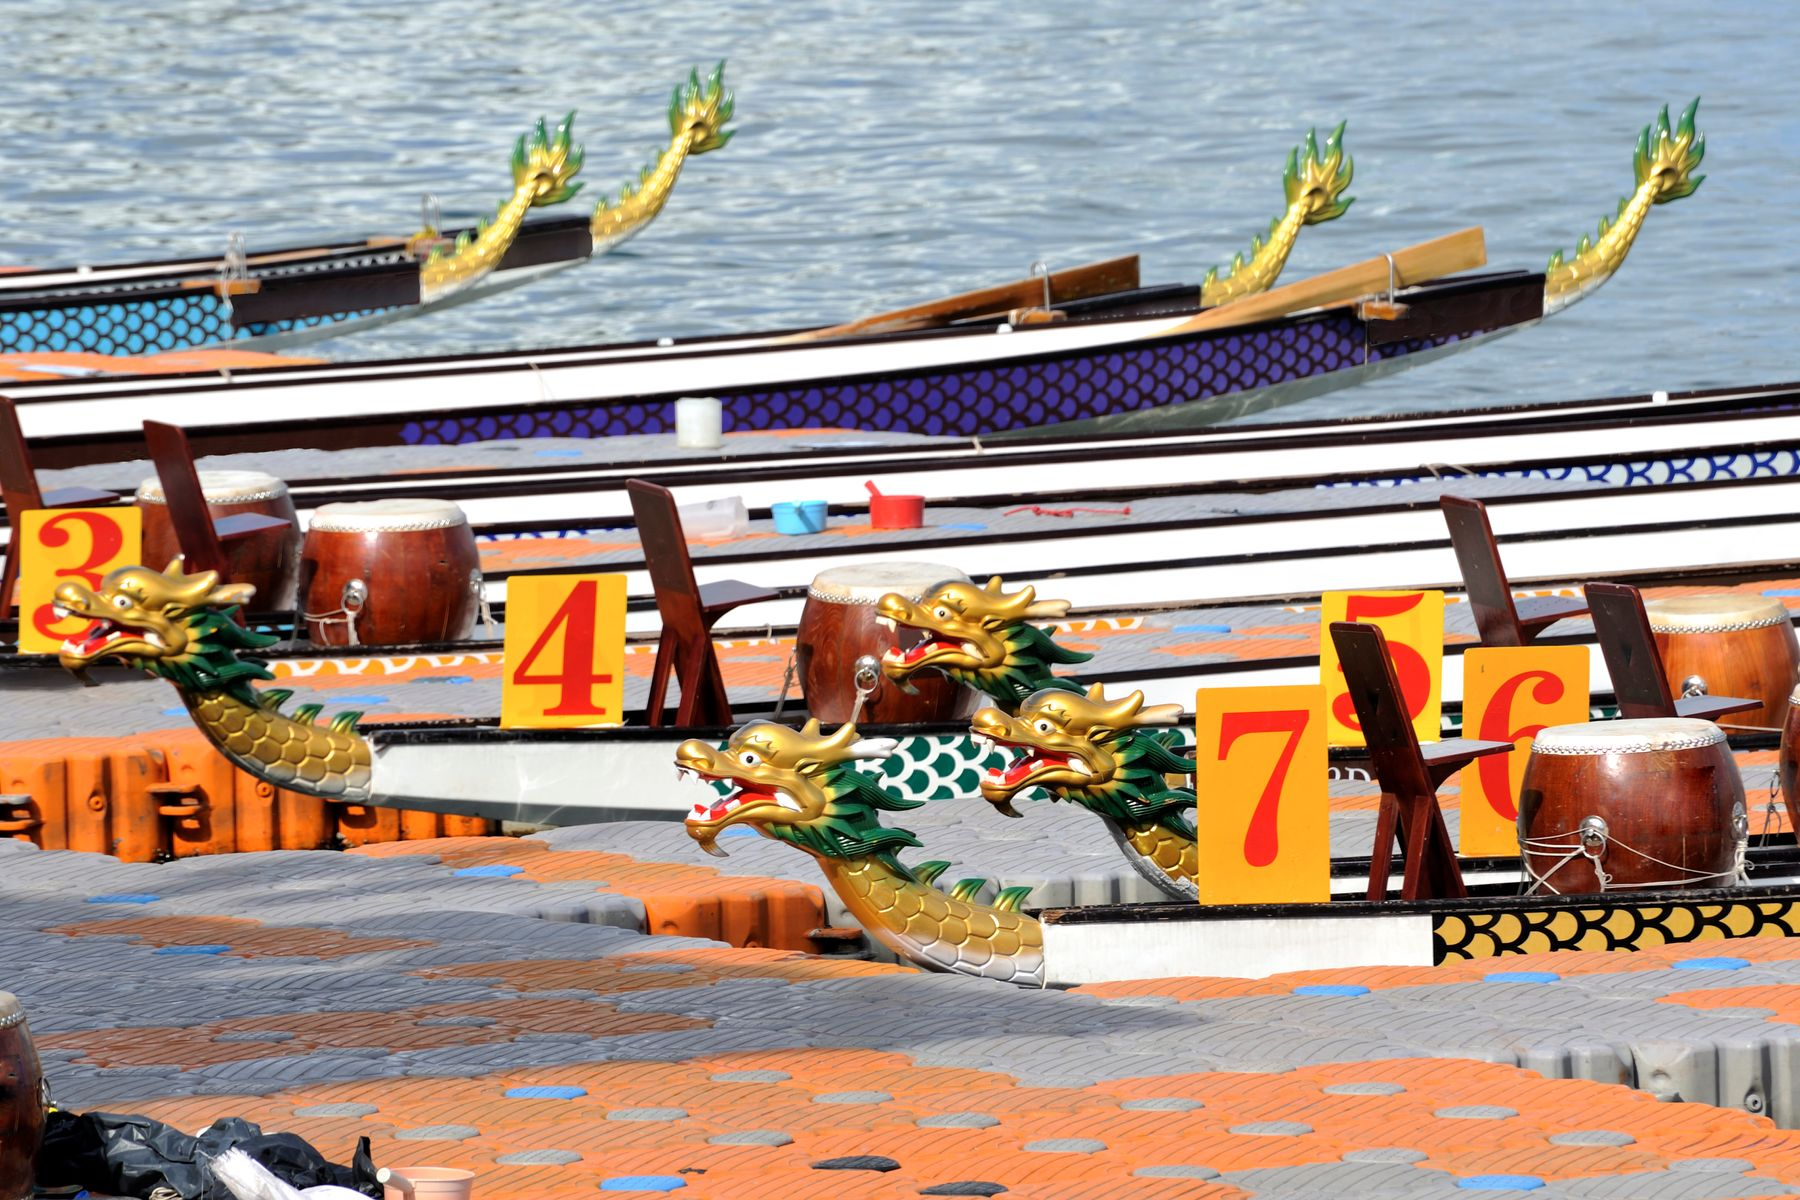 Dragon boats at a dock